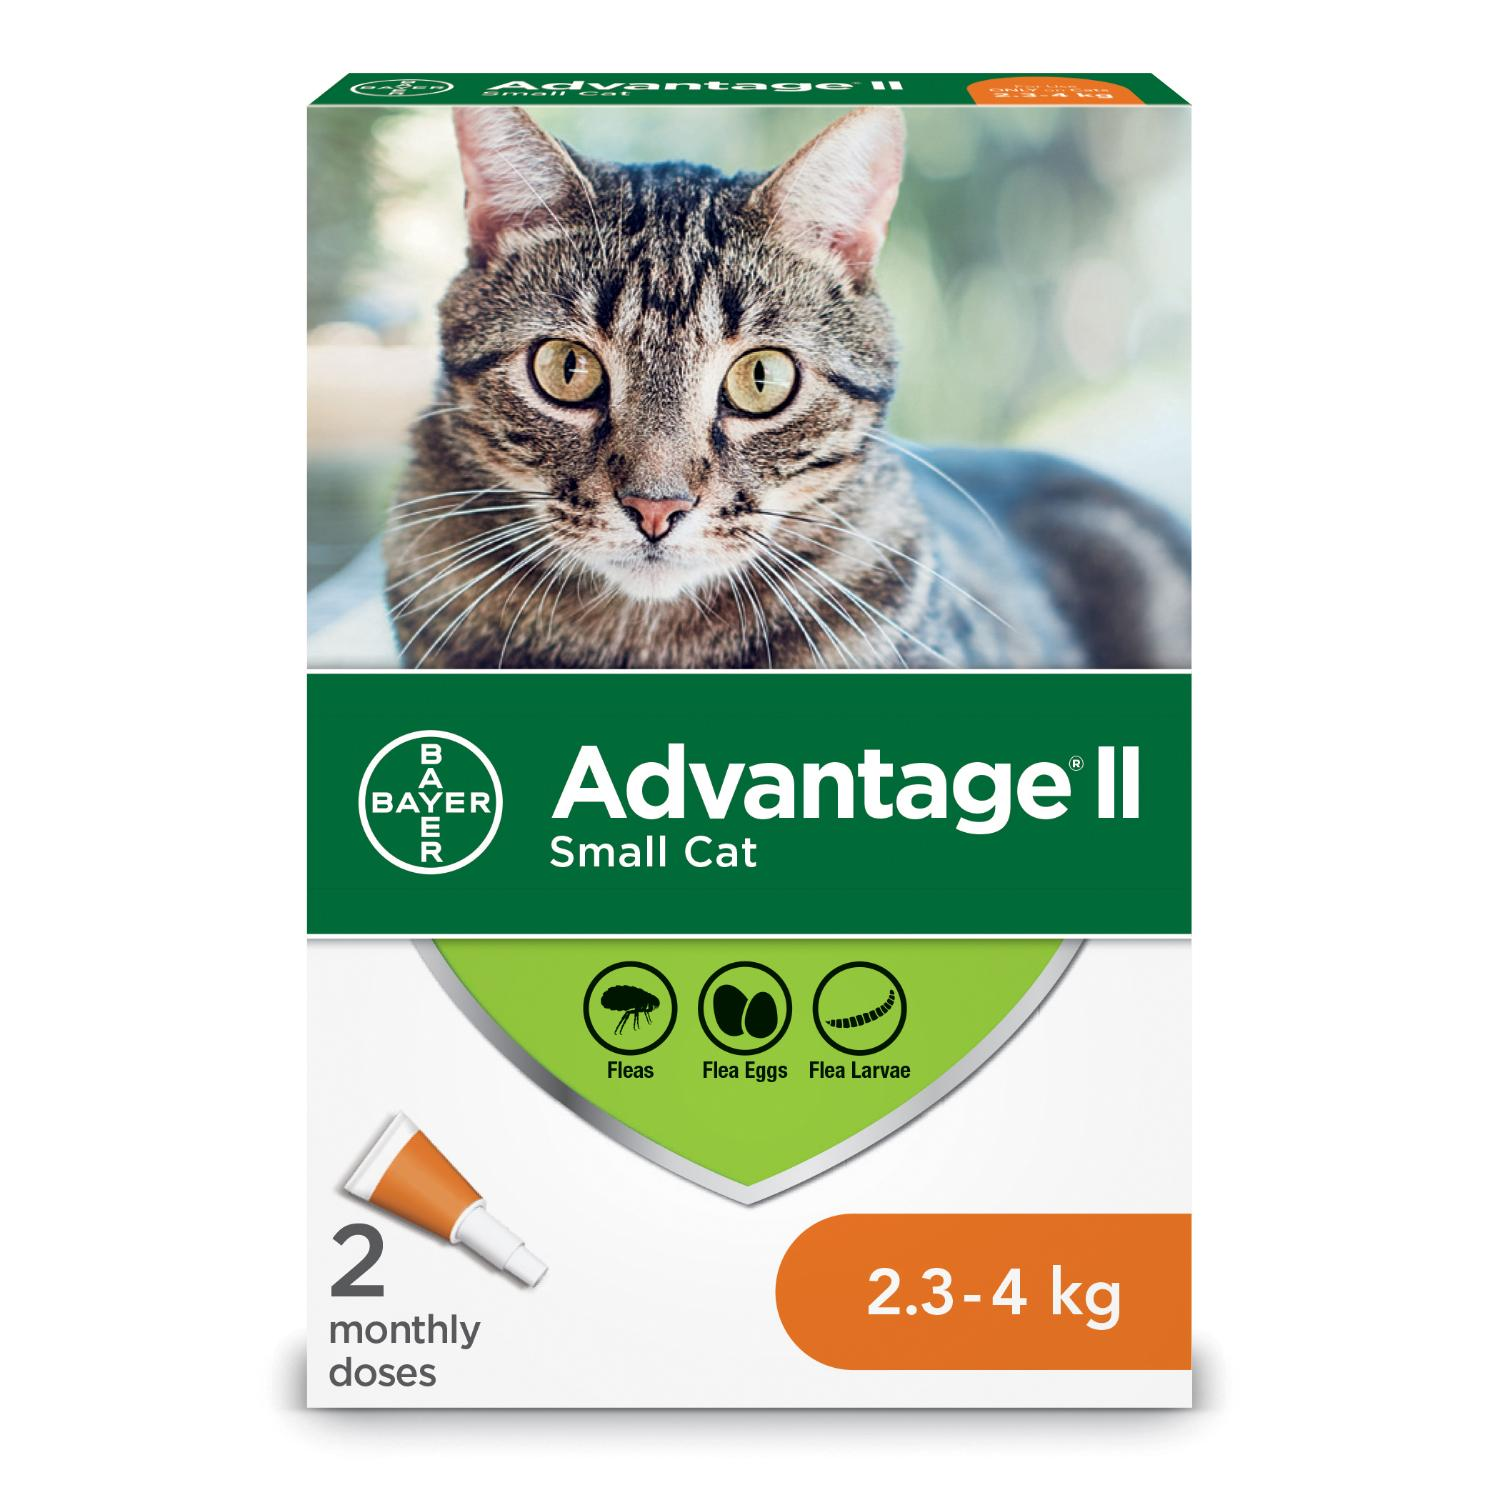 Bayer Advantage II Flea Protection for Small Cats 2.3-4-kg Image